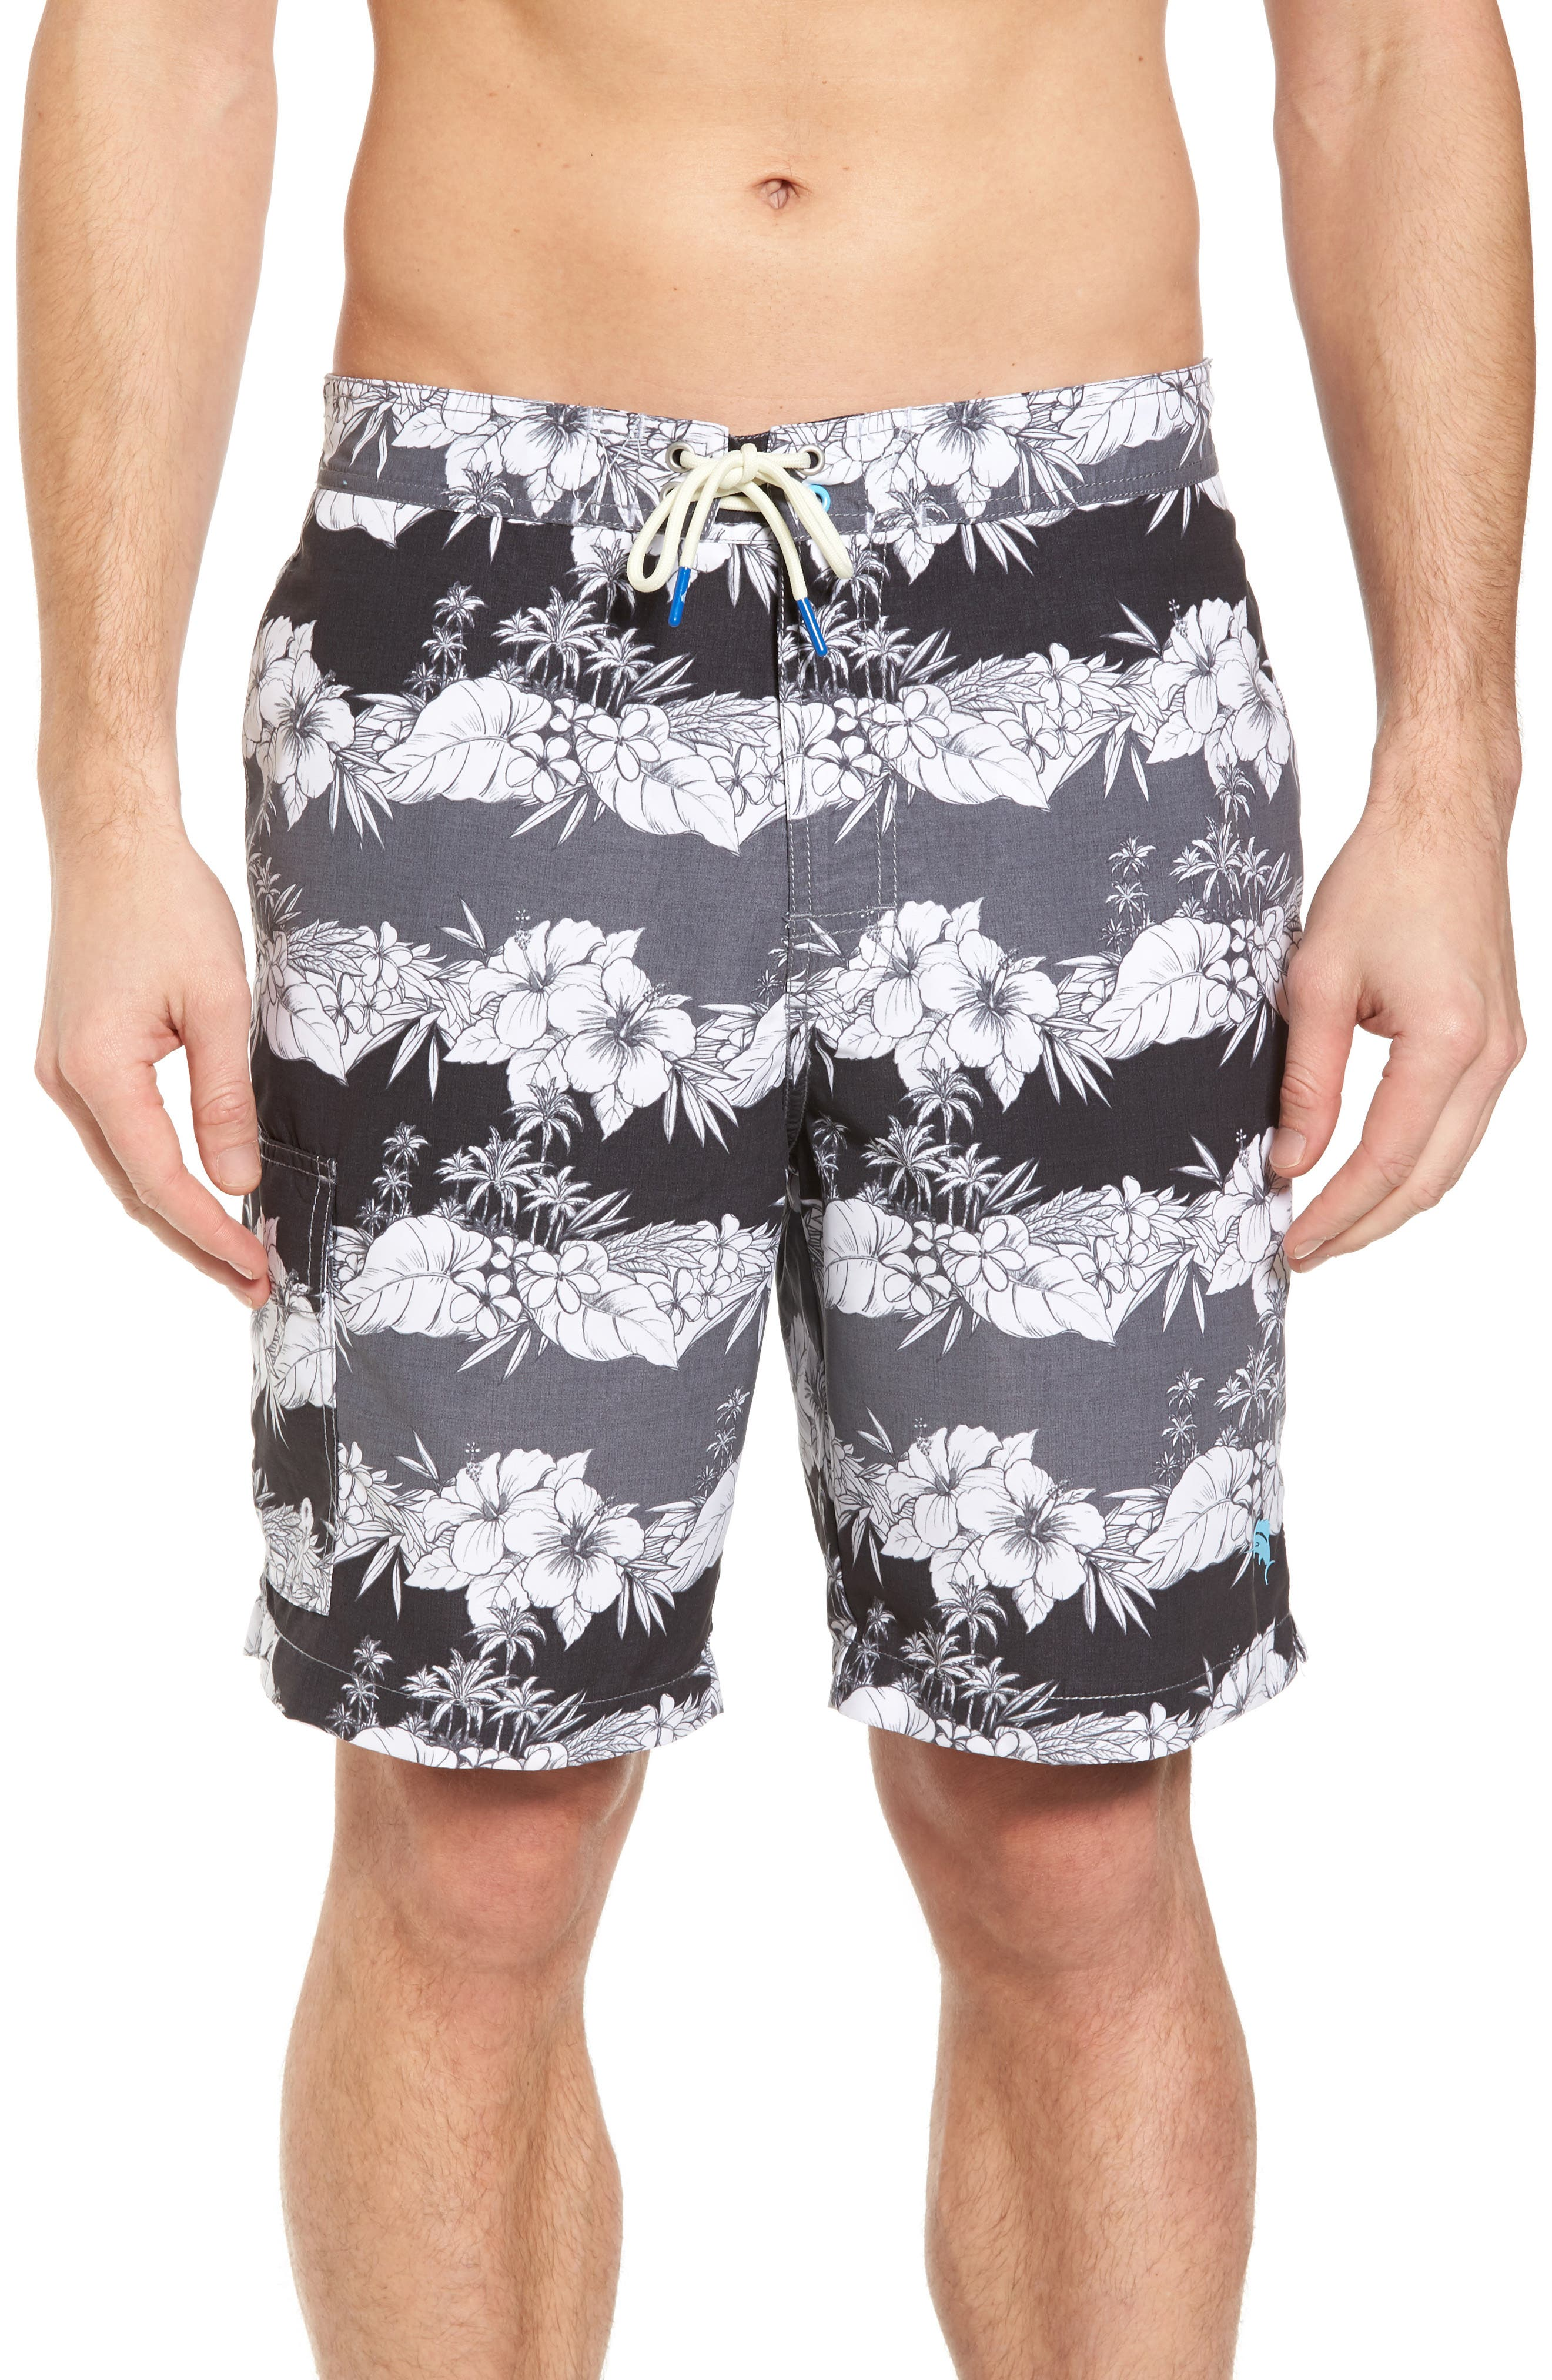 Baja Sky Vines Swim Trunks,                             Main thumbnail 1, color,                             001